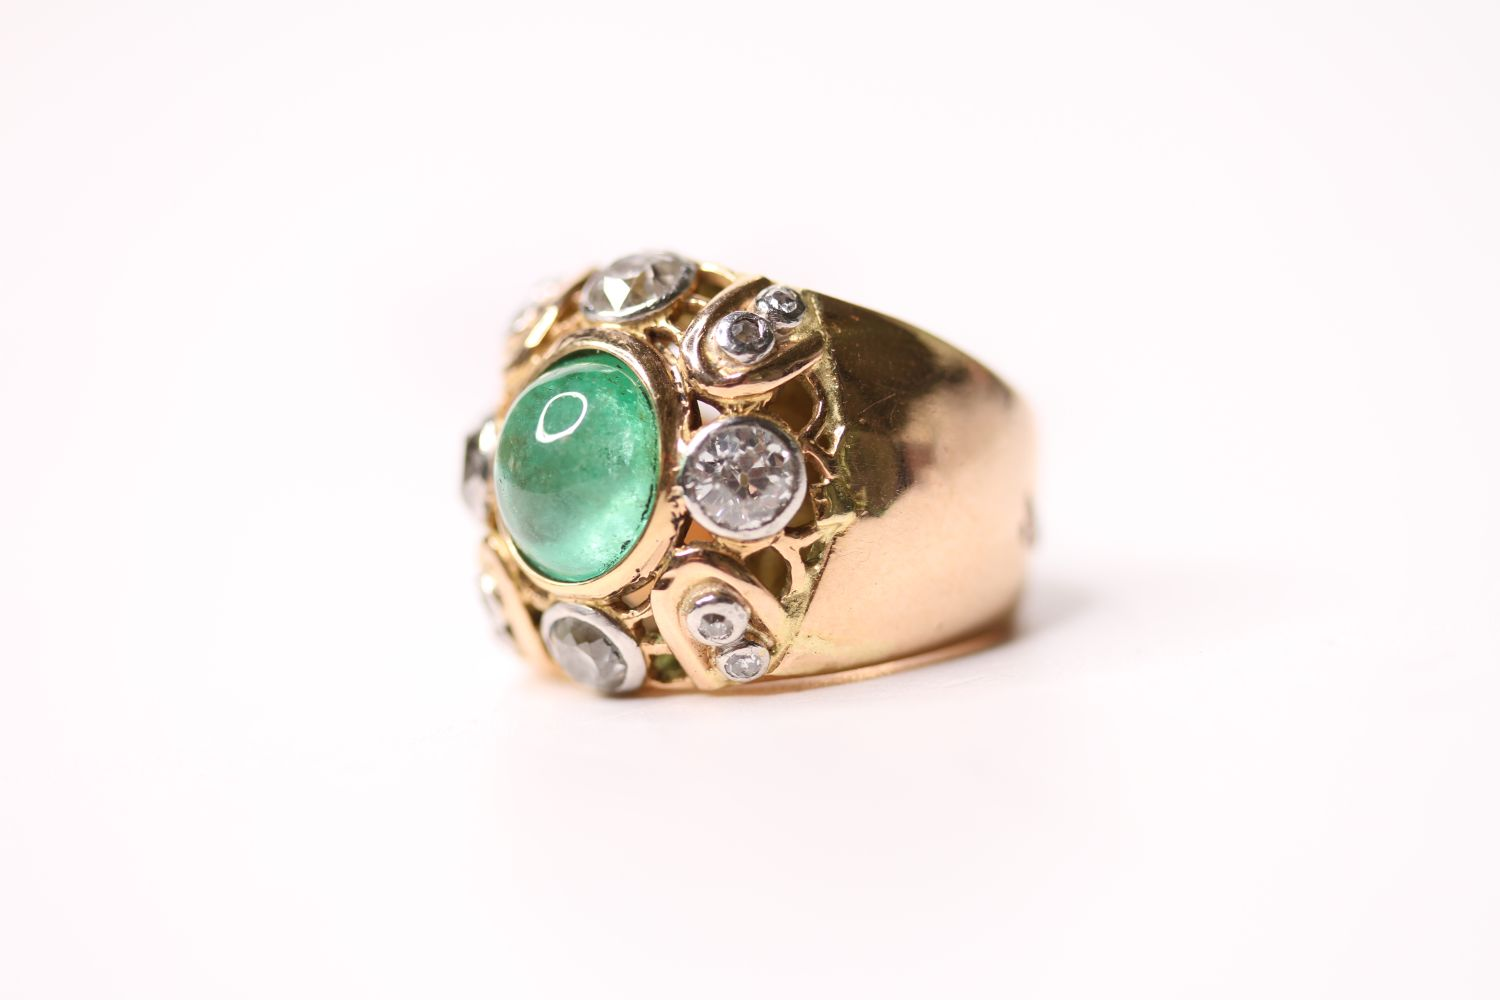 Emerald & Diamond Ring, set with a central cabochon cut emerald, surrounded by diamonds, french - Image 3 of 4